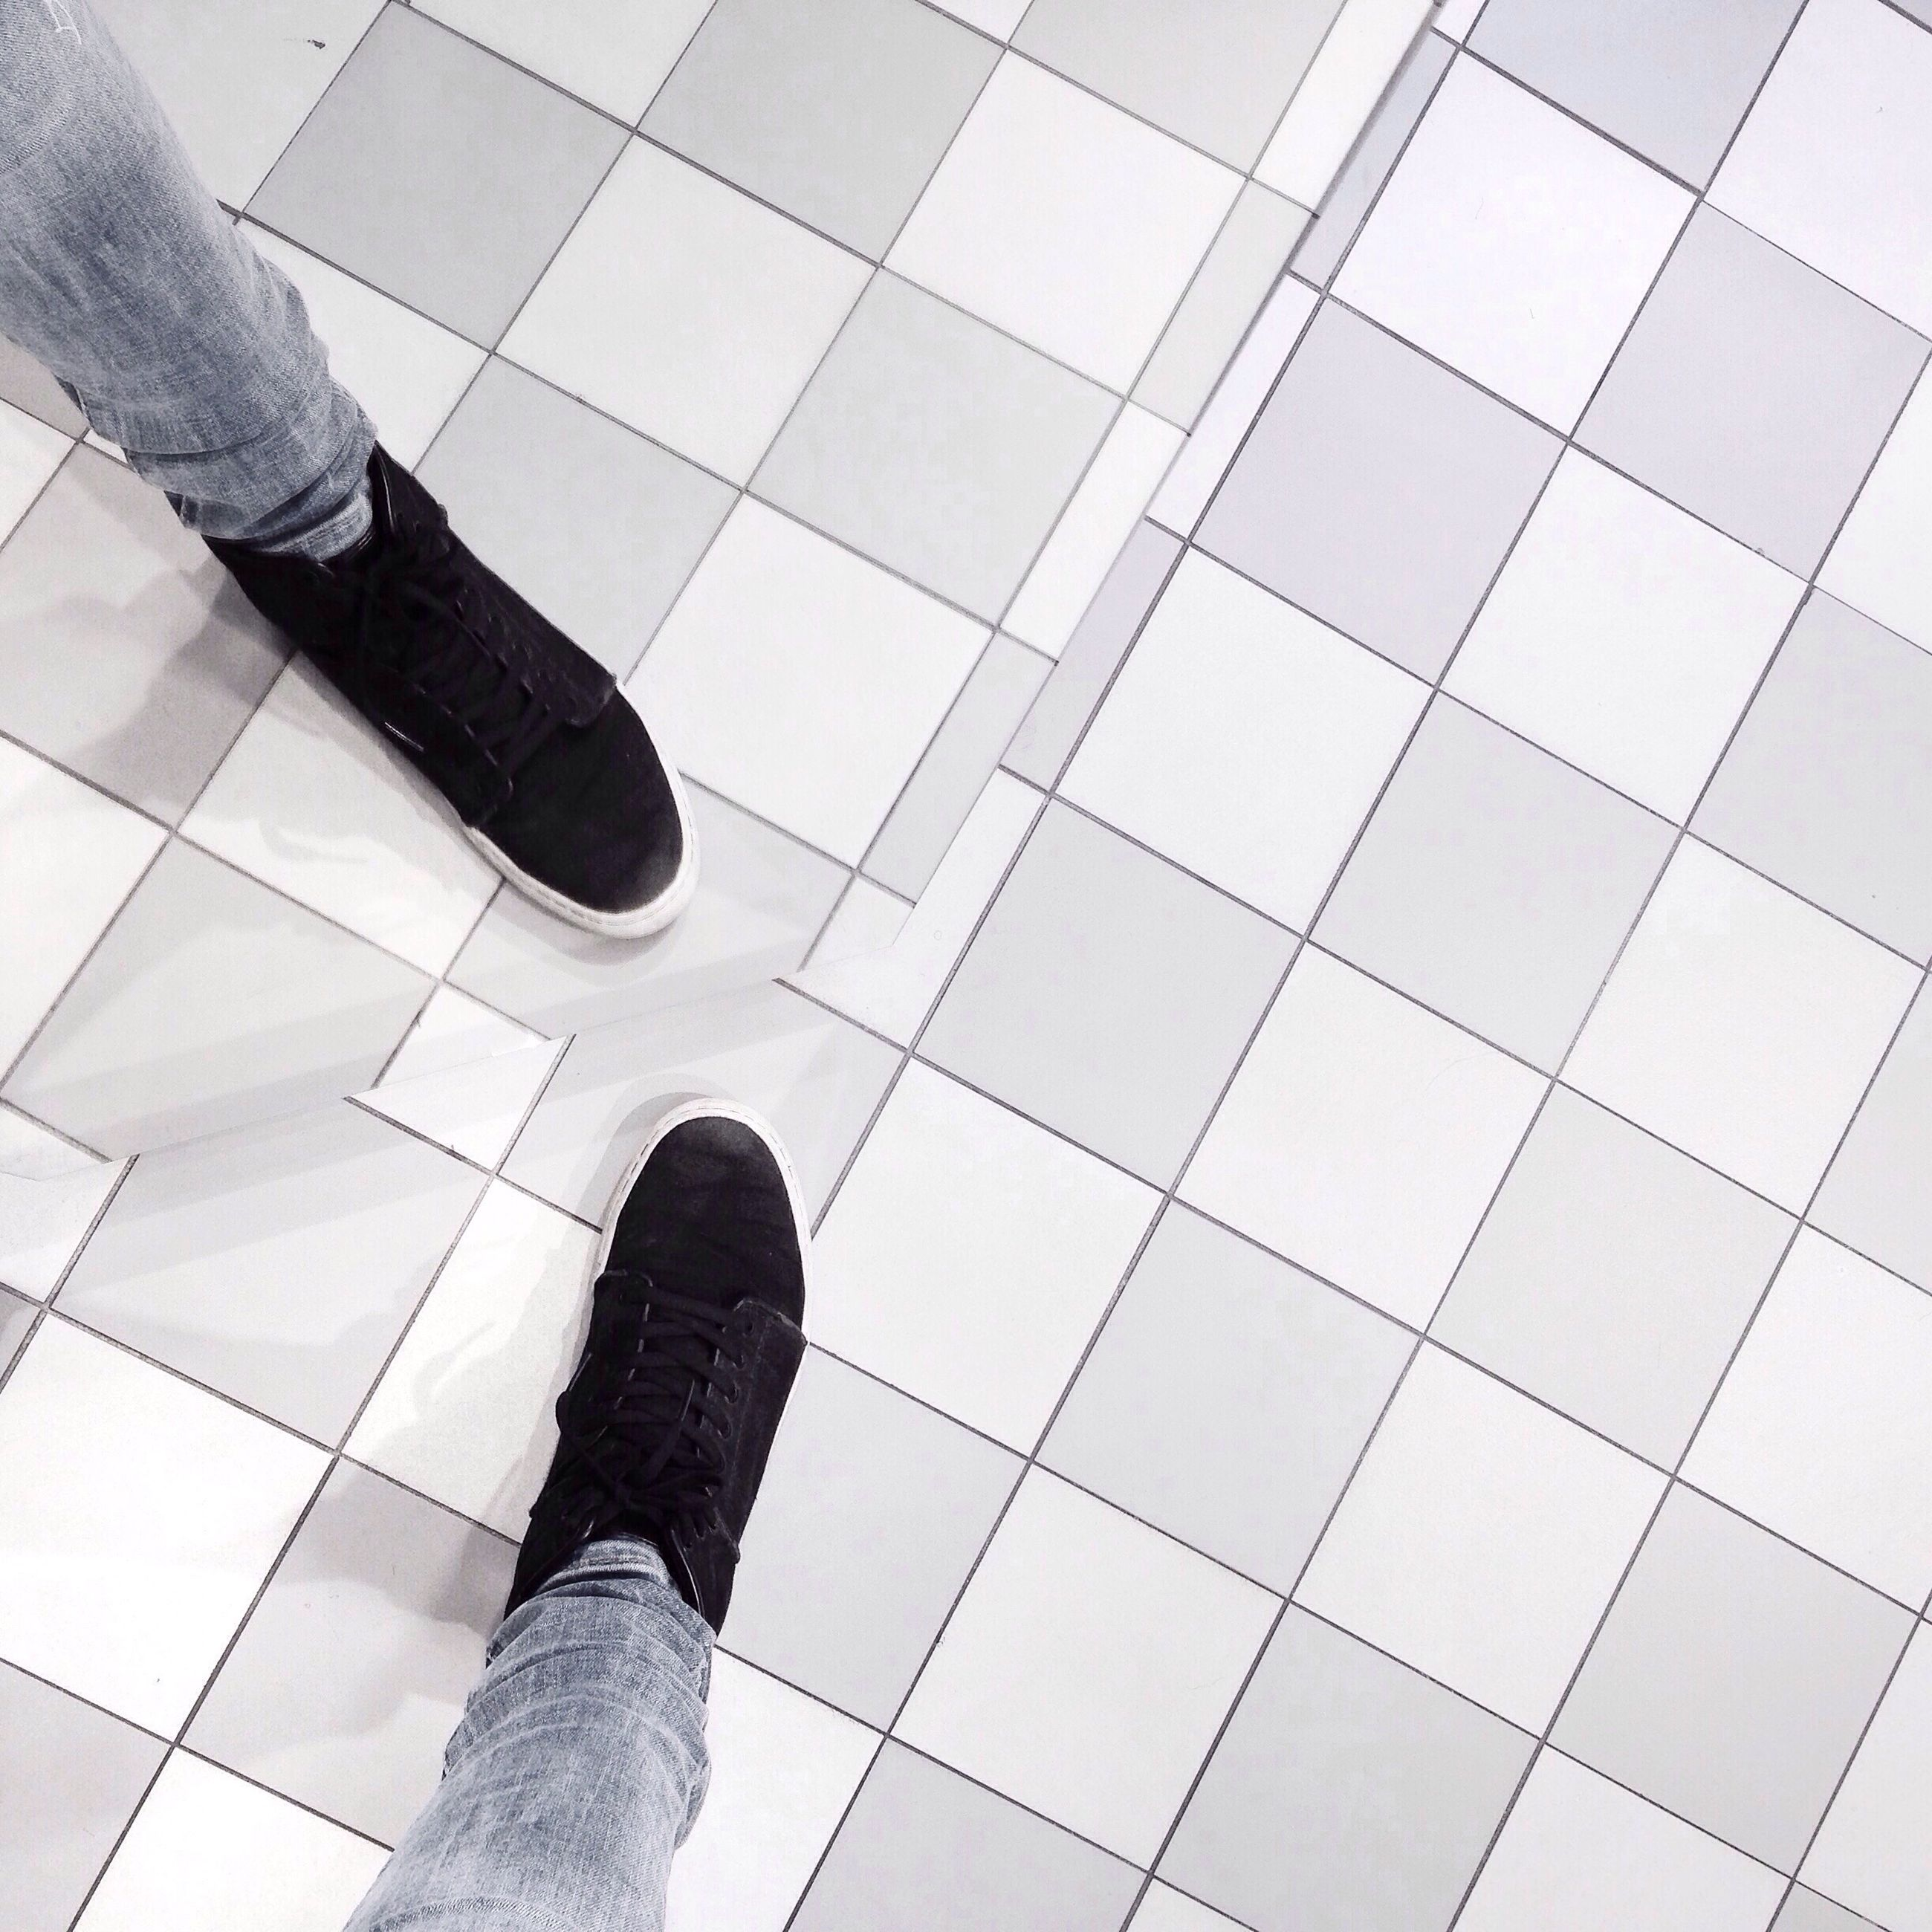 low section, person, shoe, high angle view, modern, low angle view, personal perspective, tiled floor, part of, reflection, lifestyles, standing, men, unrecognizable person, human foot, pattern, flooring